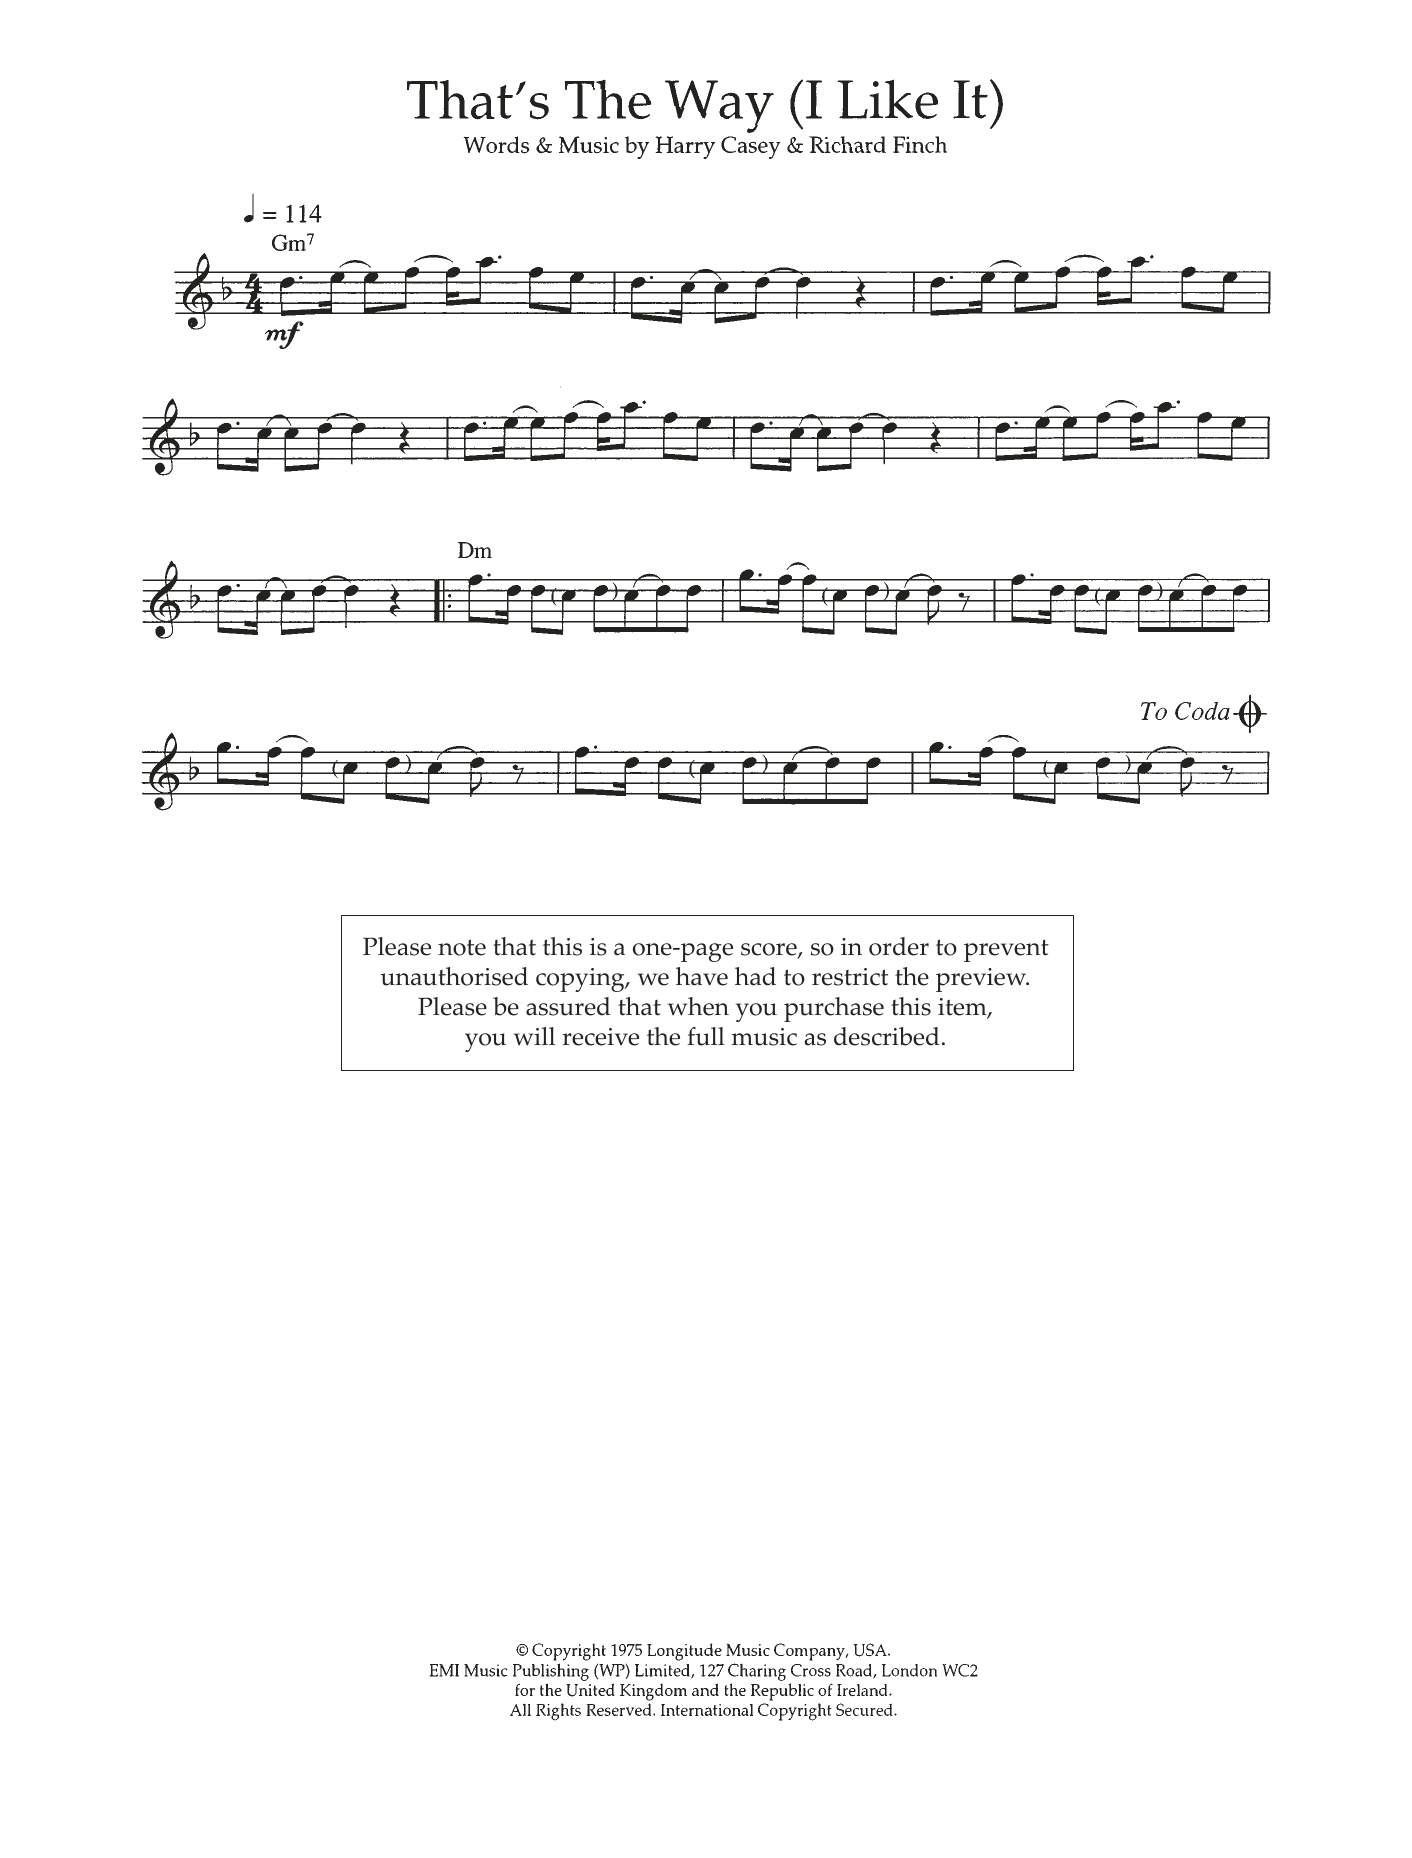 That's The Way (I Like It) Sheet Music